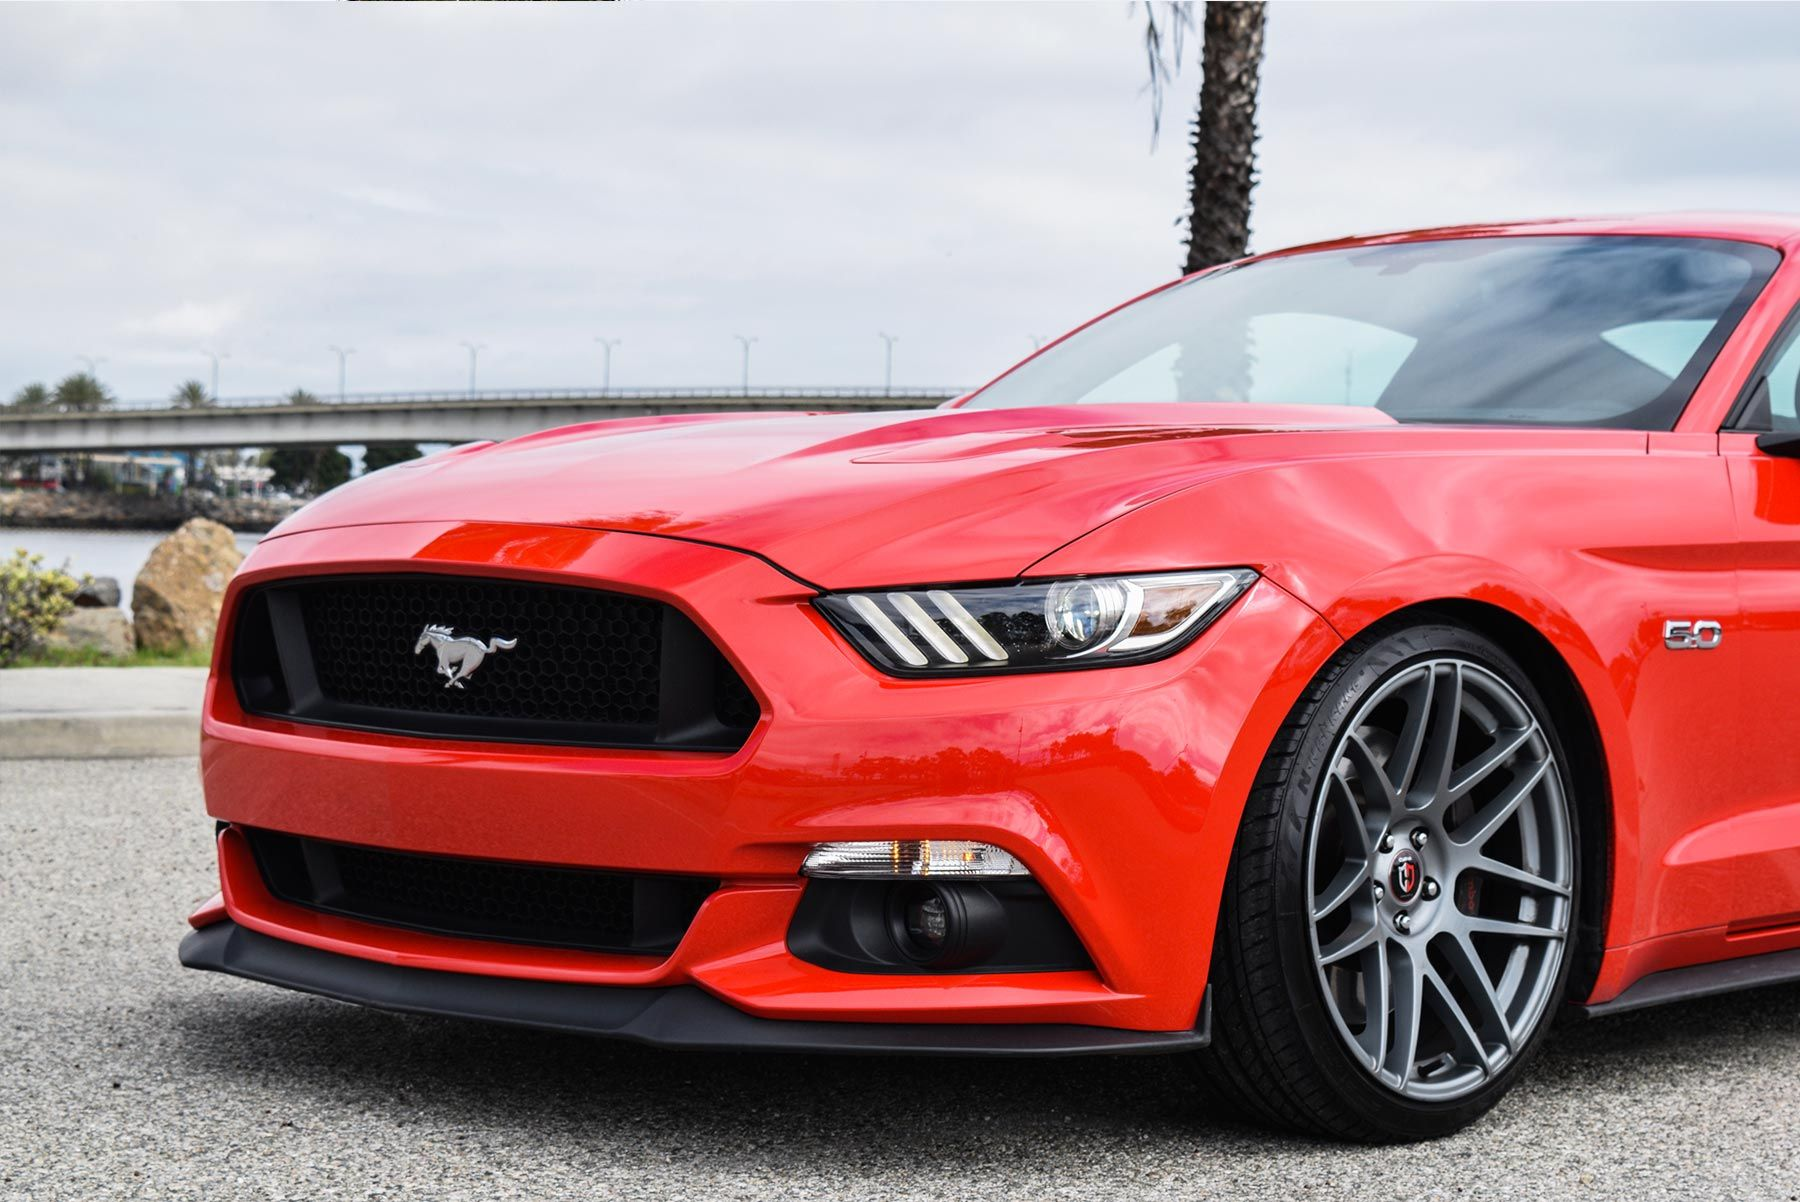 Curva Concepts C300 Staggered Wheels On A Mustang Gt Velg